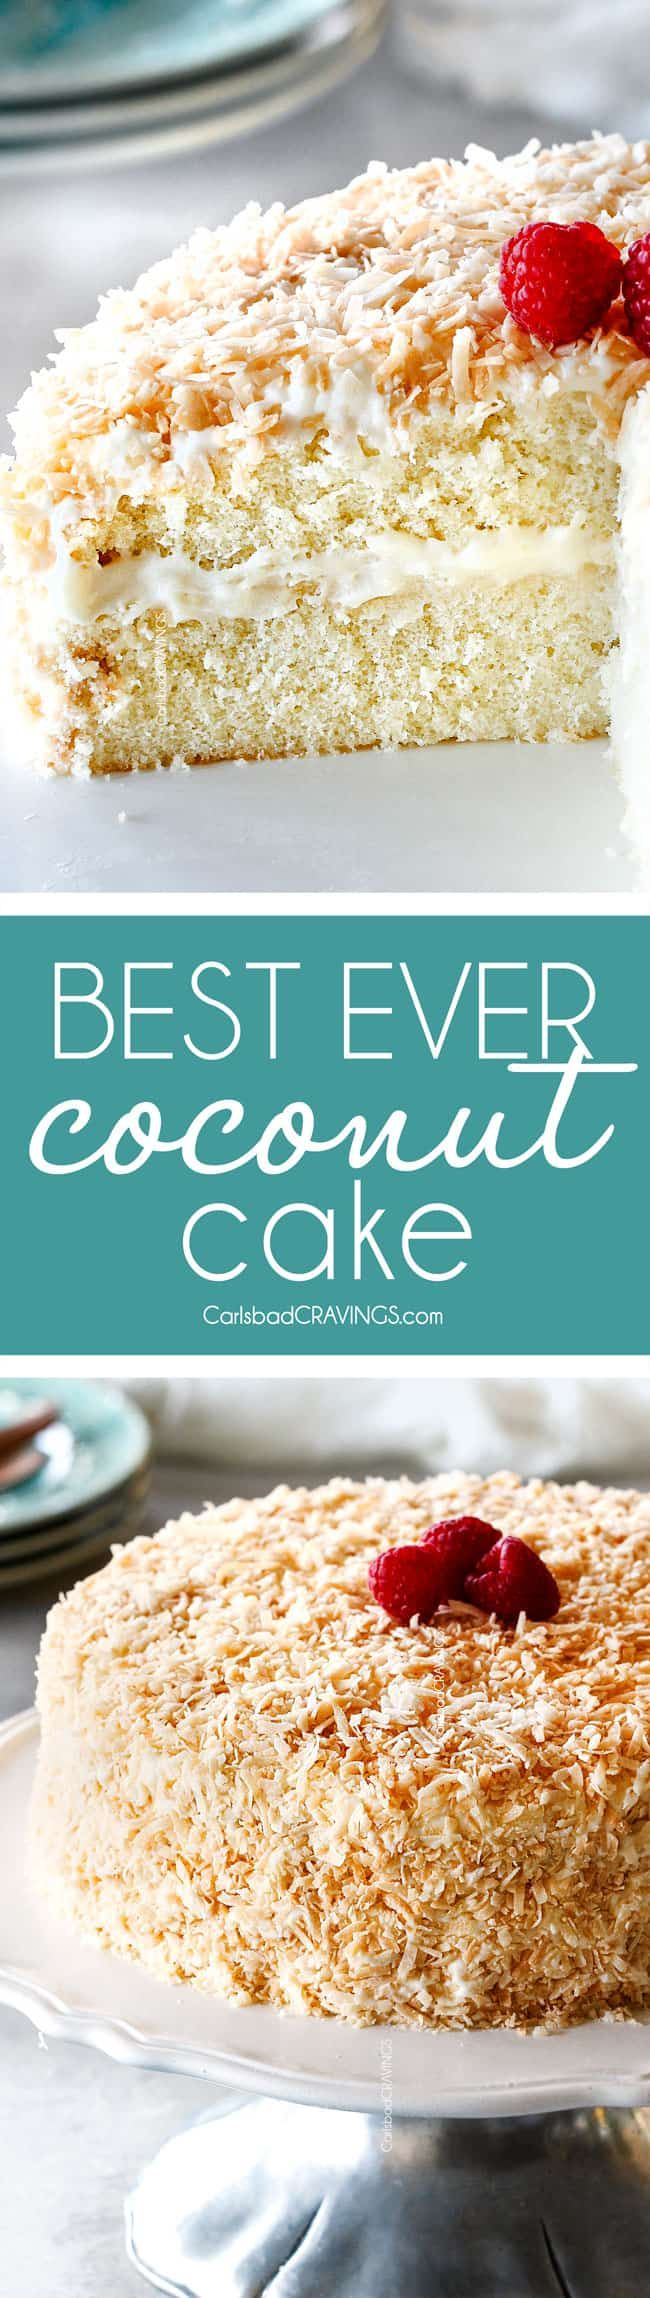 This Coconut Cake is a coconut lover's dream!  It isn't just a white cake with coconut frosting but is infused with 3 types of coconut, is sooo tender and moist and smothered in the luscious Coconut Cream Cheese Frosting for the Best Coconut Cake ever! via @carlsbadcraving